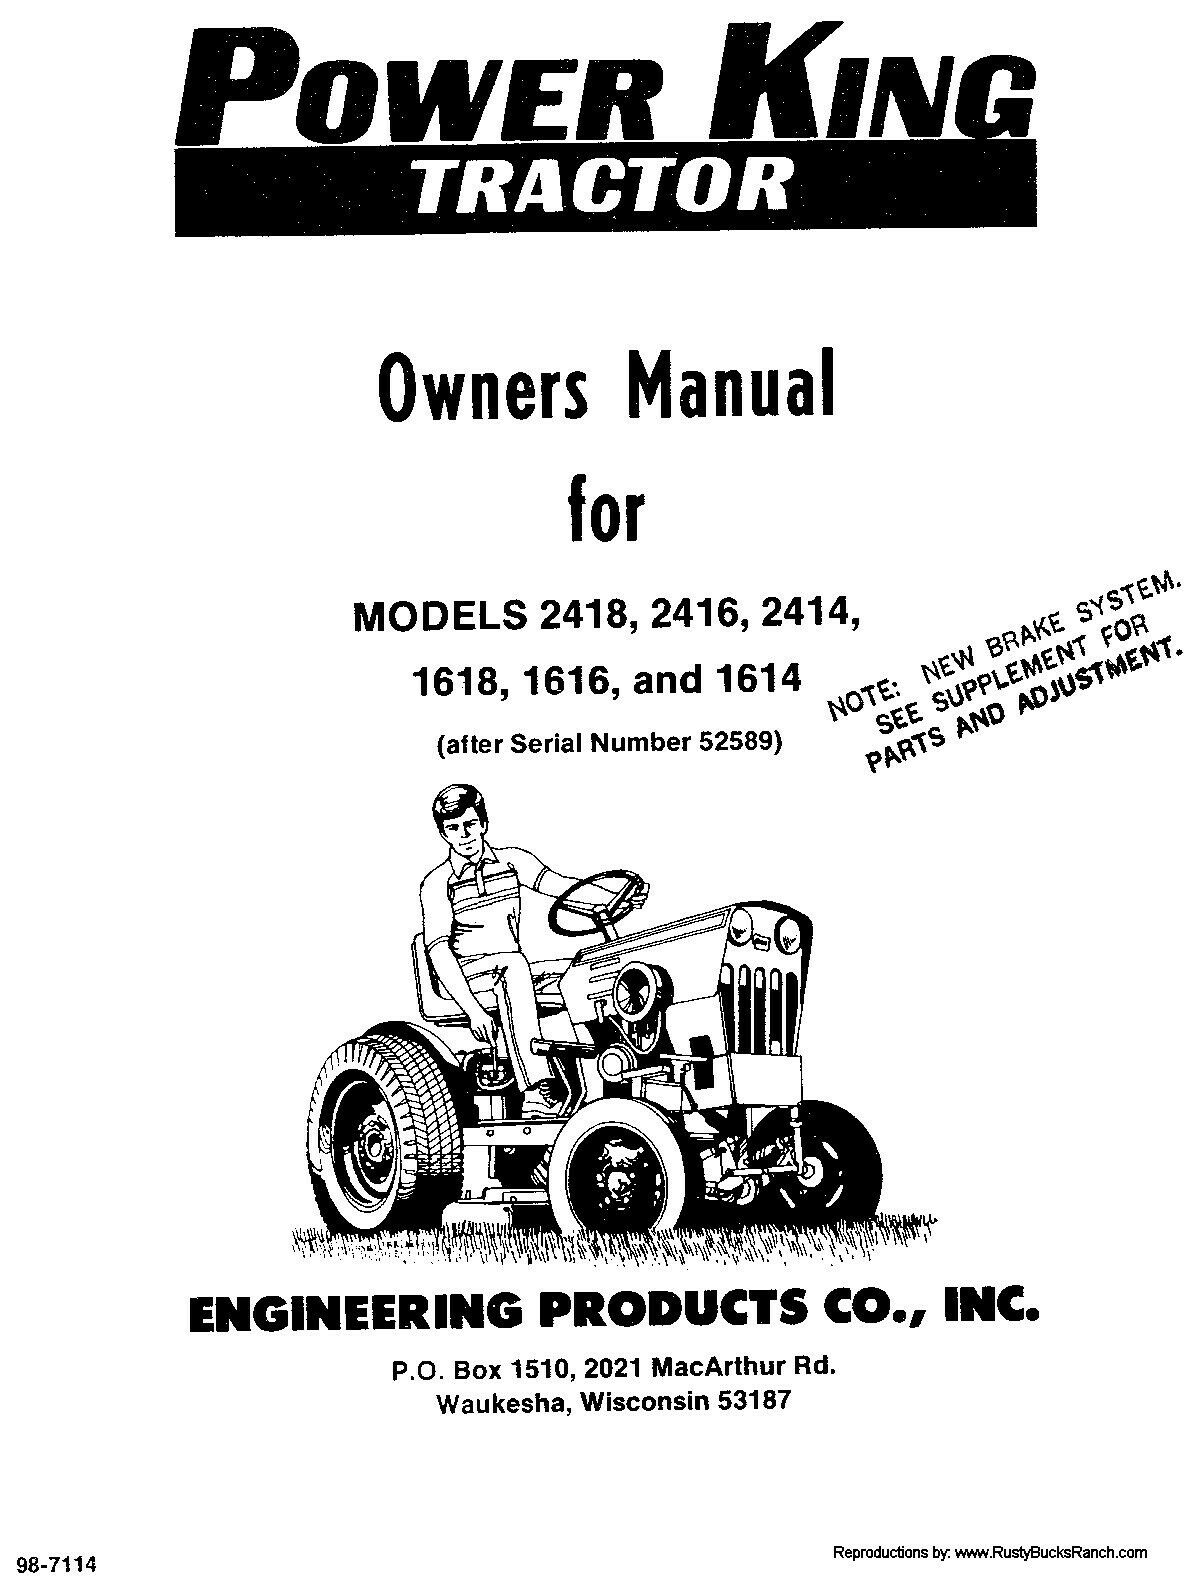 Power King Tractors Operators Manual